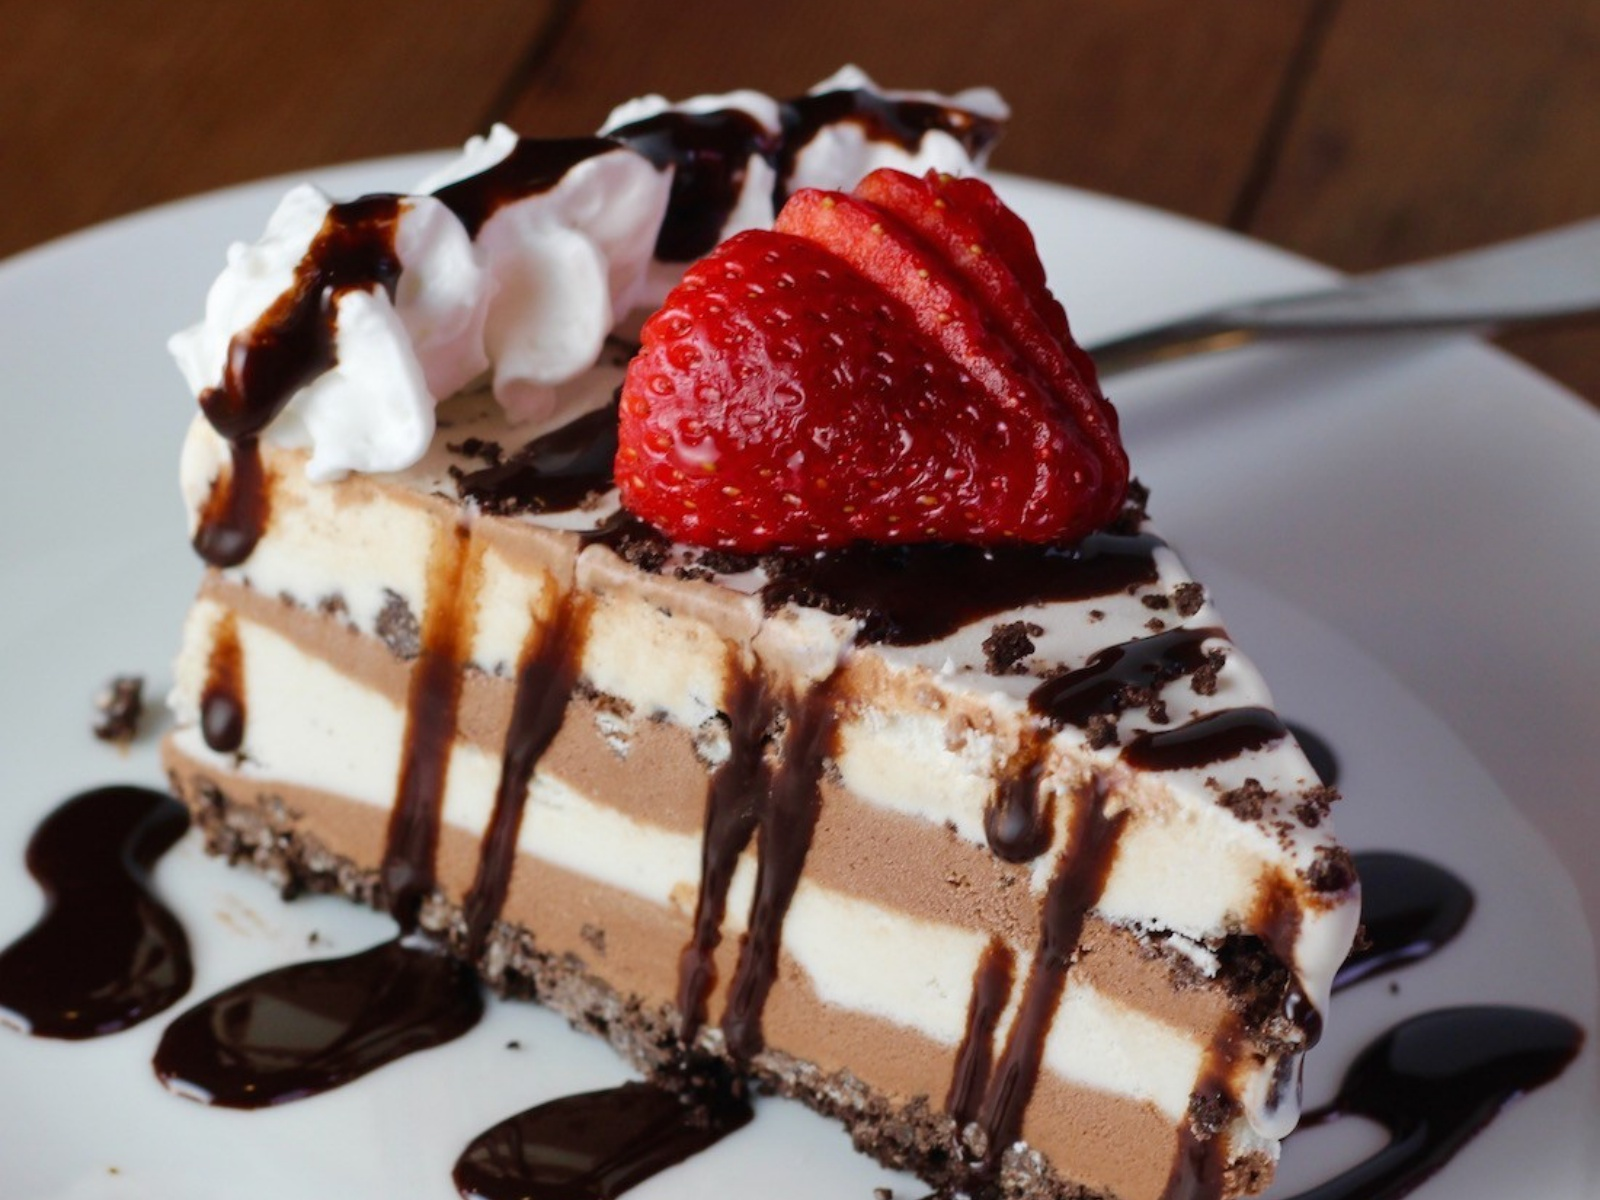 Ice Cream Caketopped with strawberries and drizzled with chocolate